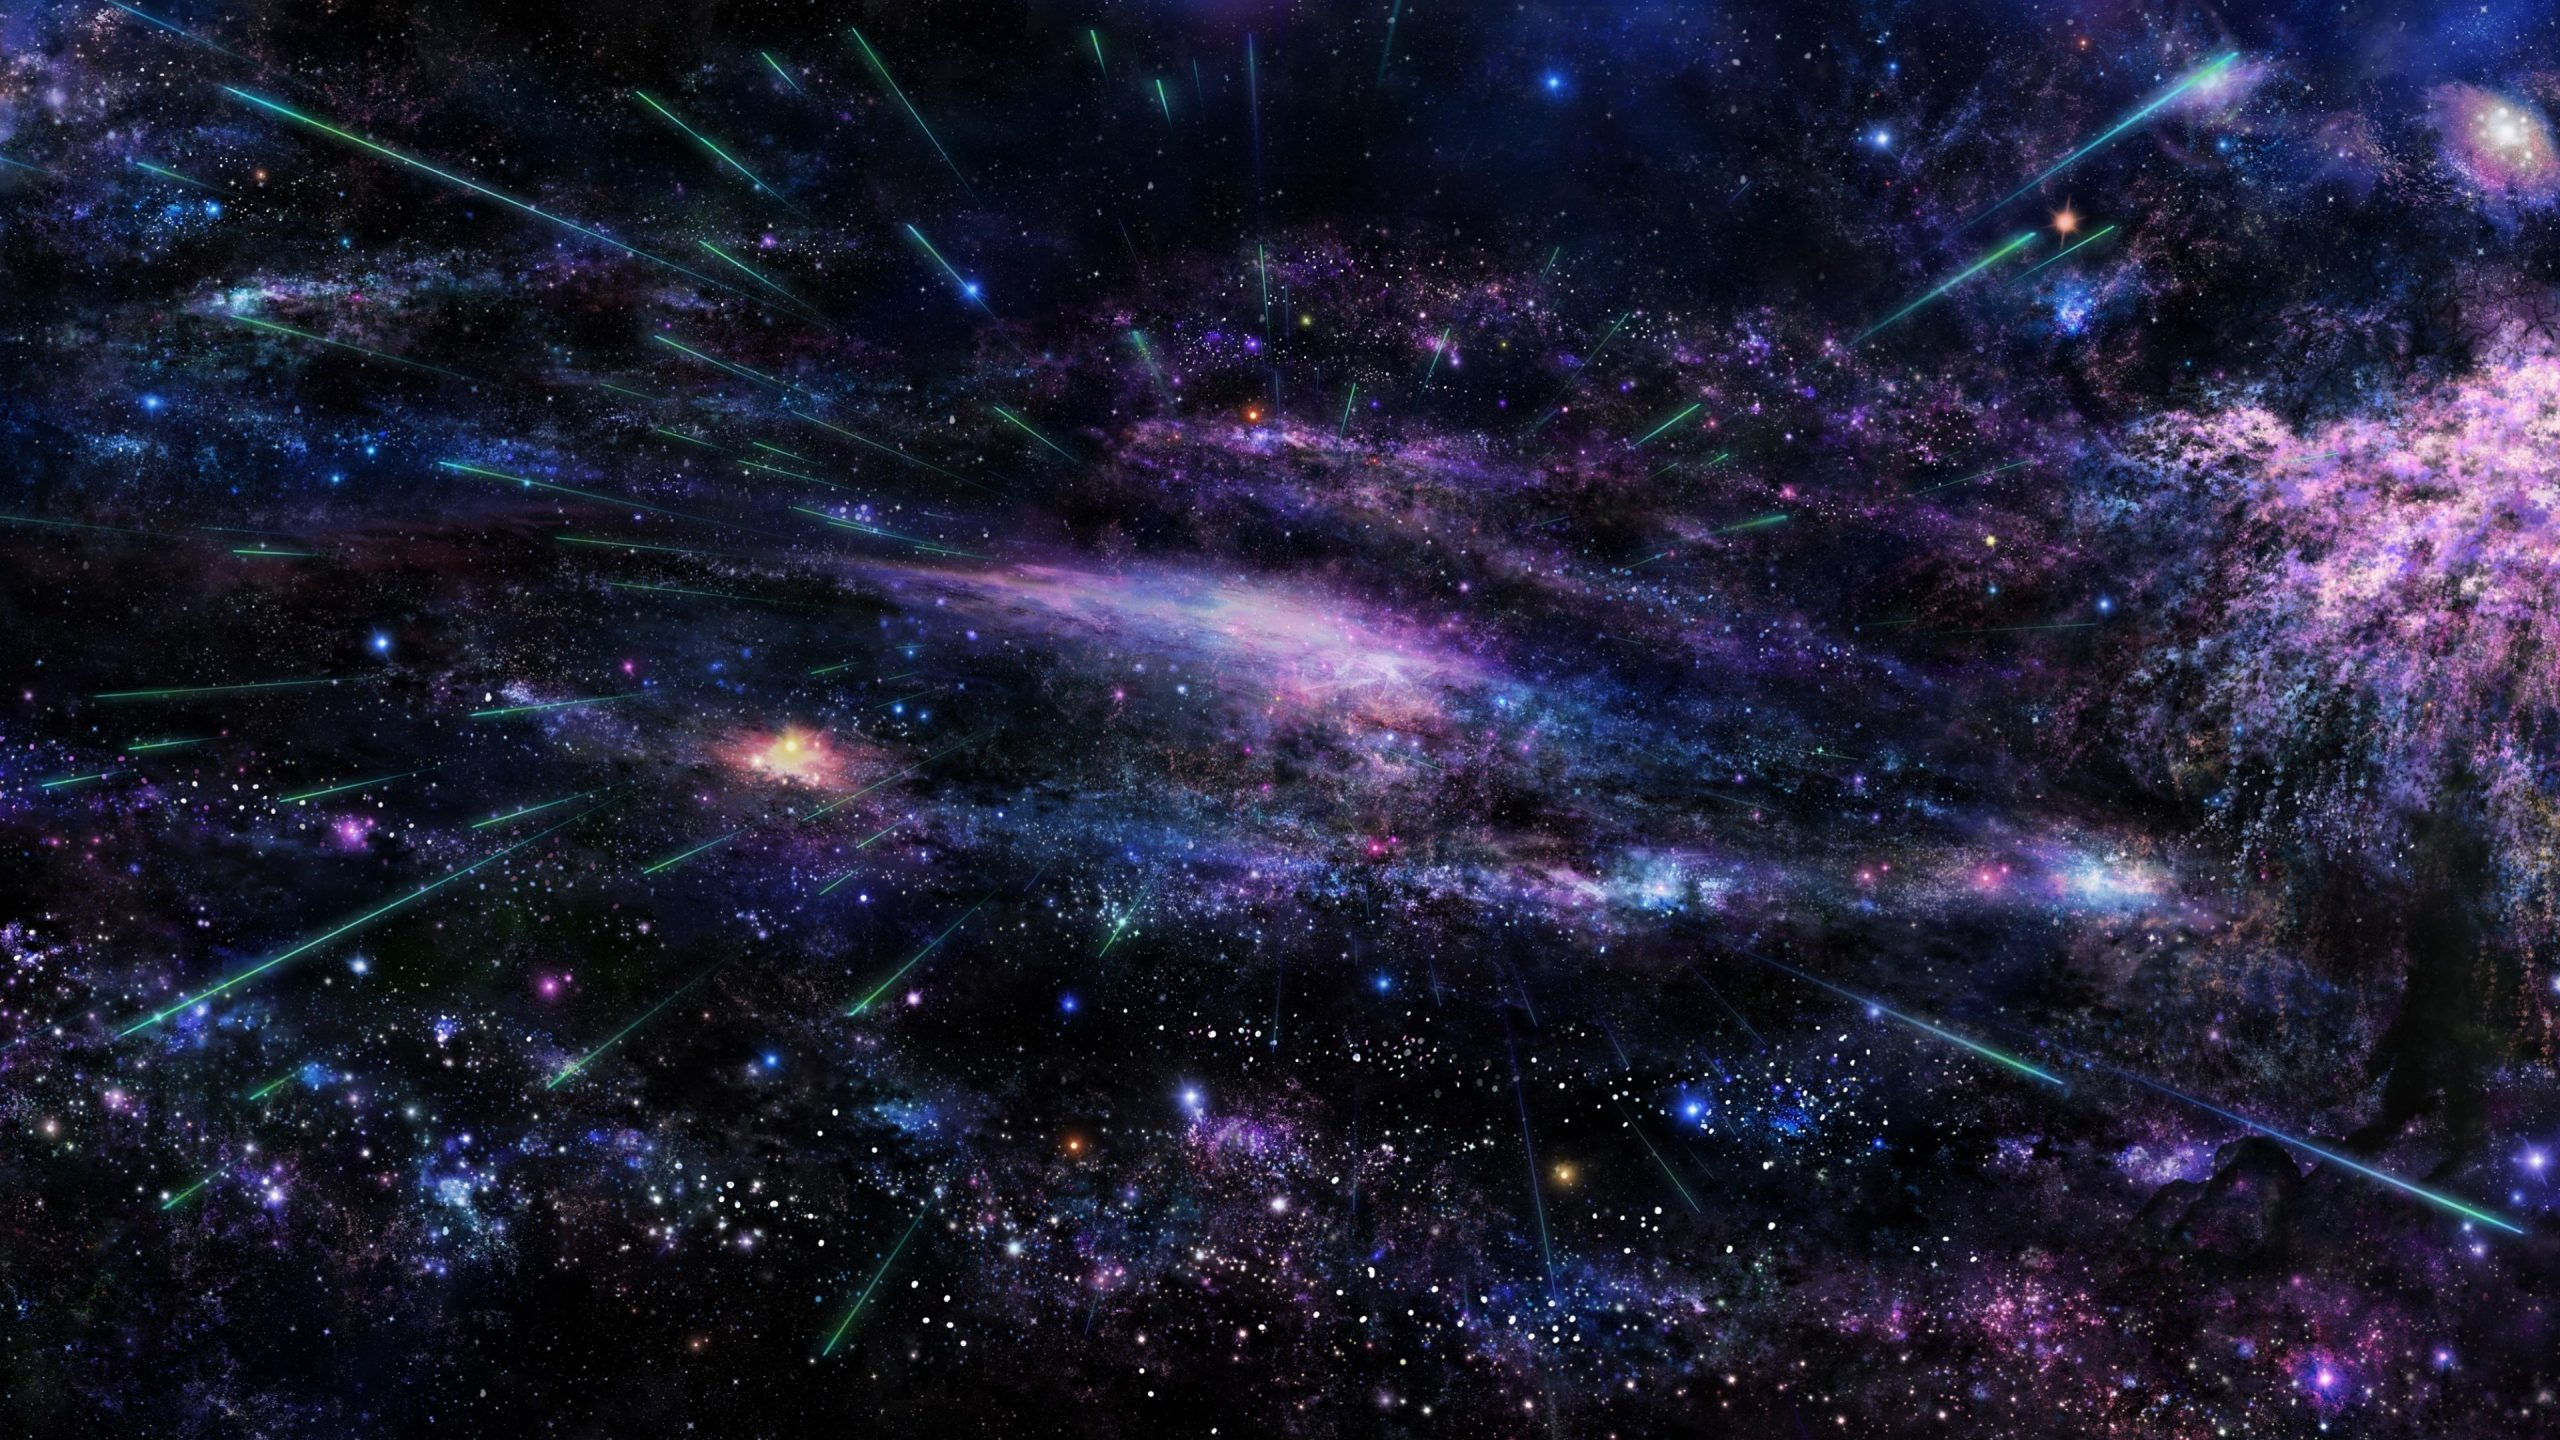 Space wallpapers 4k uhd 16 9 desktop backgrounds hd s pictures and images